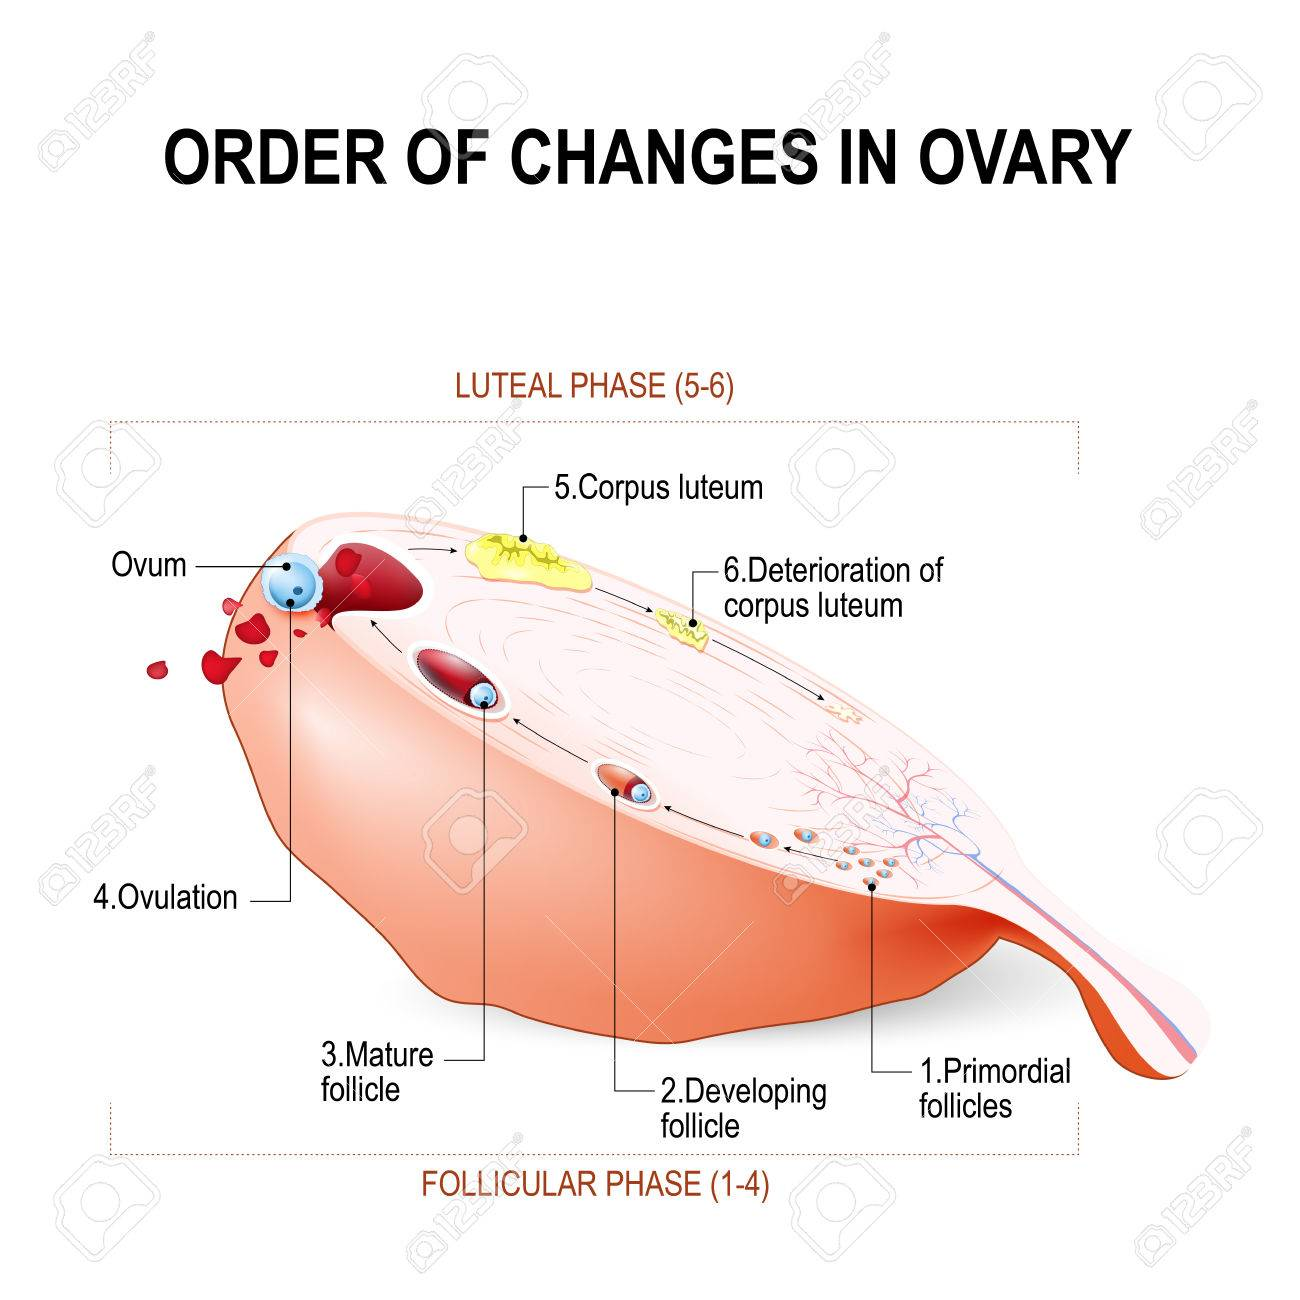 hight resolution of order of changes in ovary from developing follicle to ovulation and corpus luteum menstruation